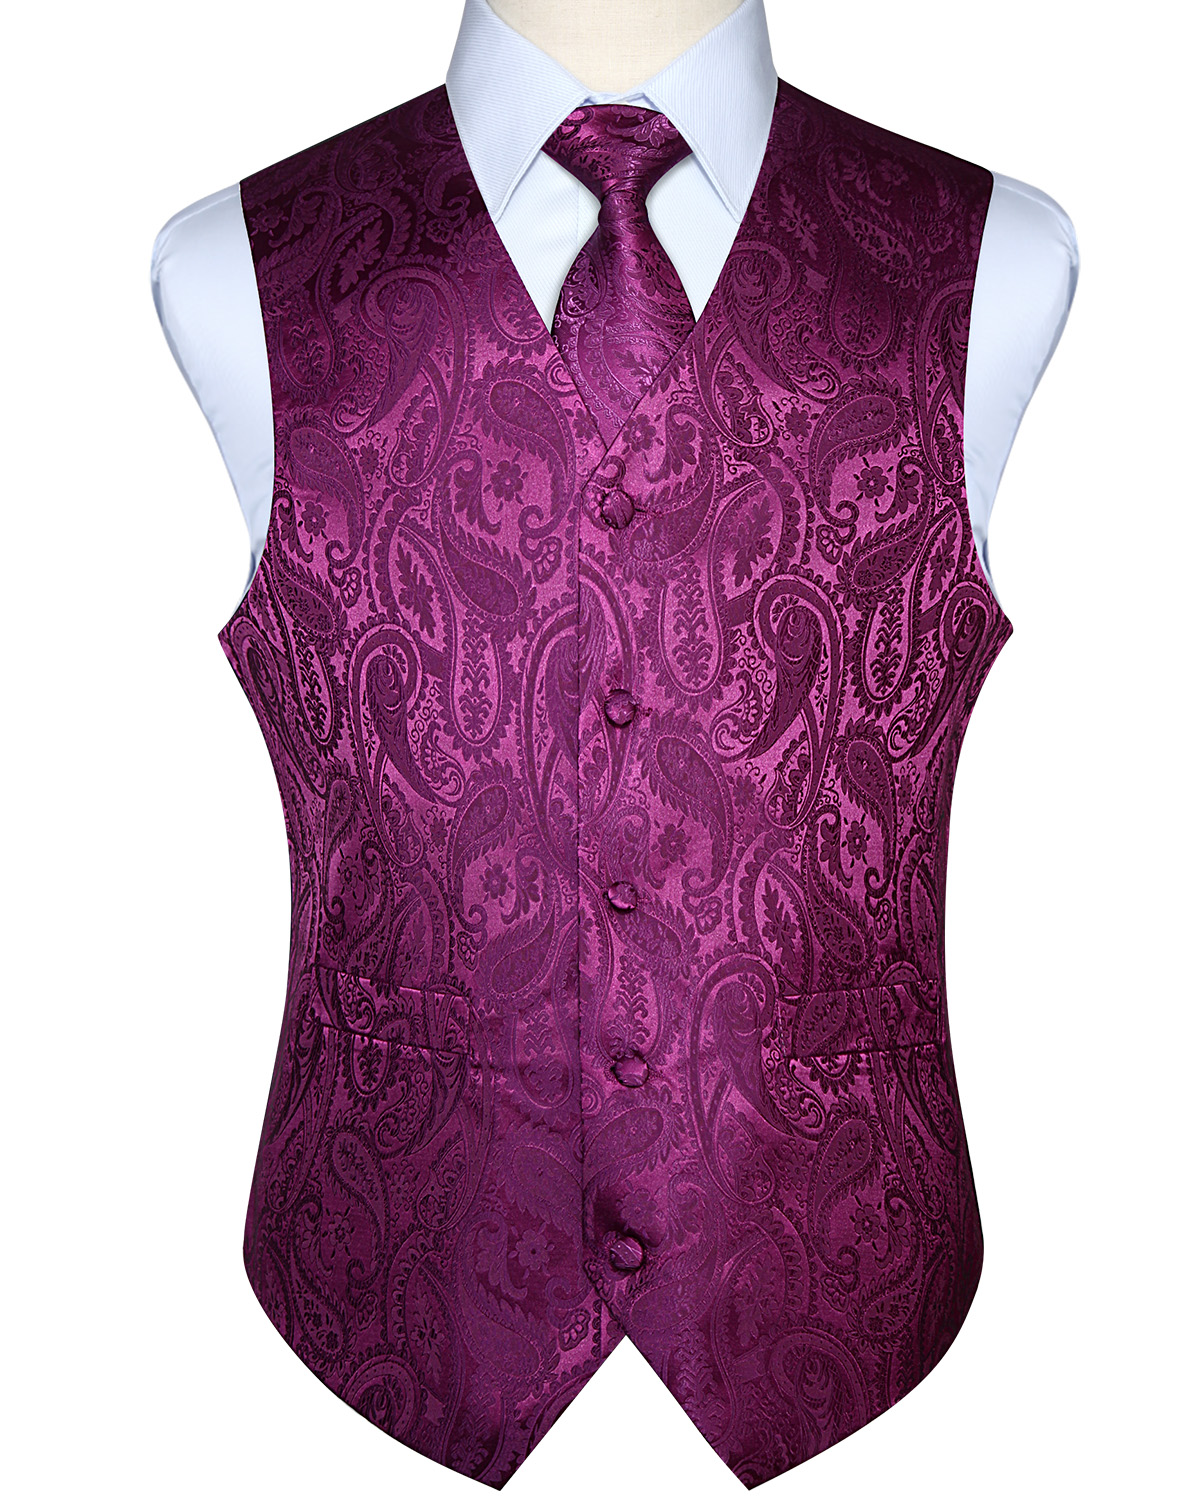 Men Waistcoat Vest Party Wedding Handkerchief Necktie Classic Paisley Plaid Floral Jacquard Pocket Square Tie Suit Set(China)